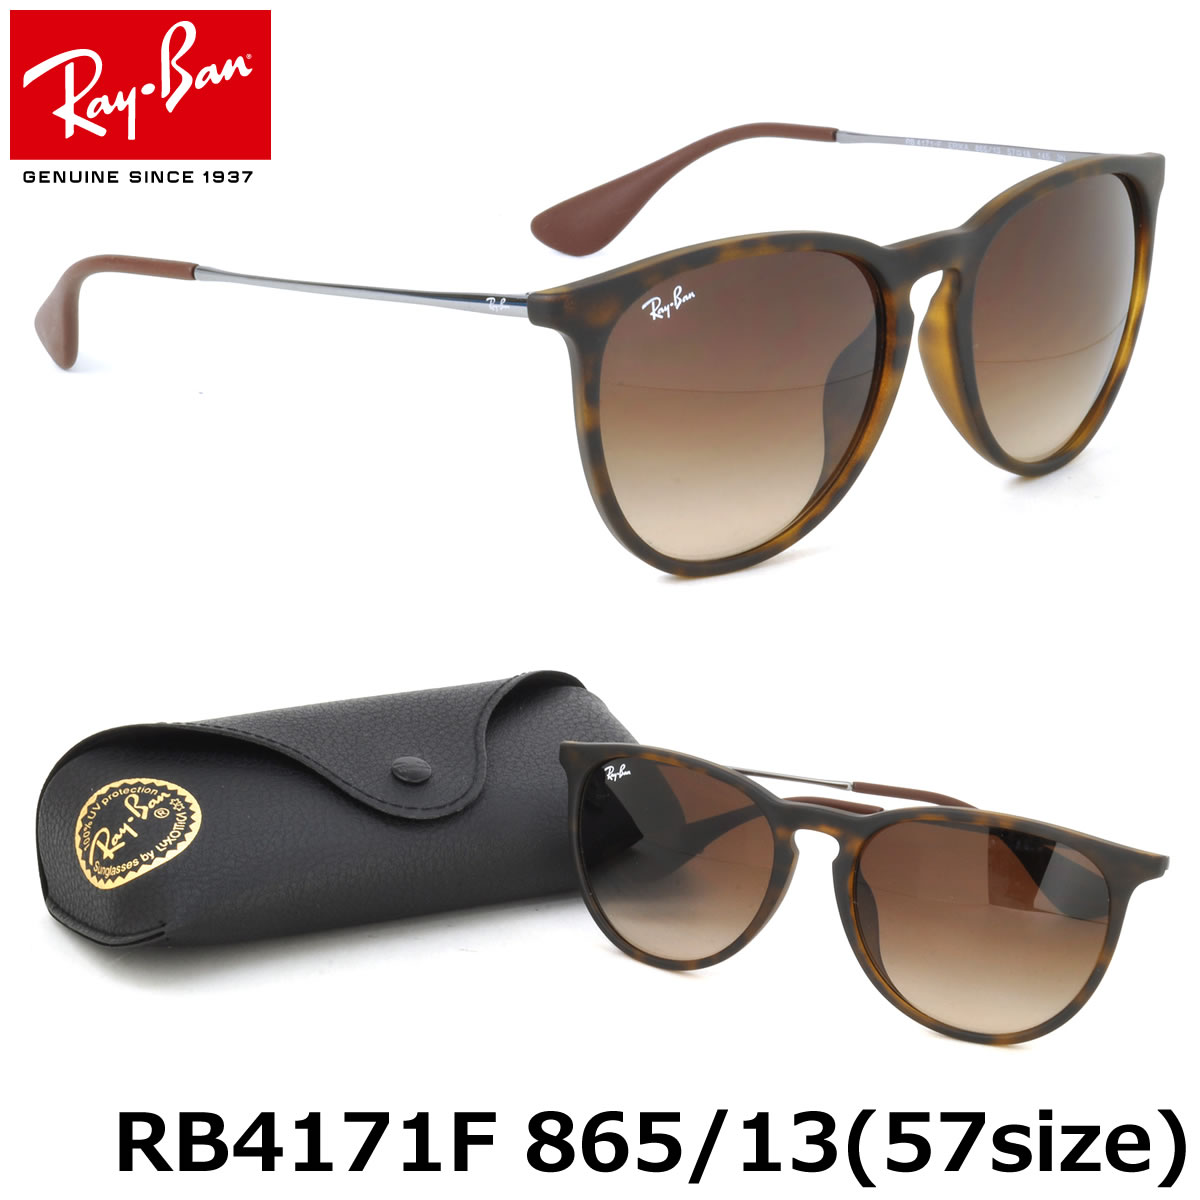 ray ban sunglasses models name